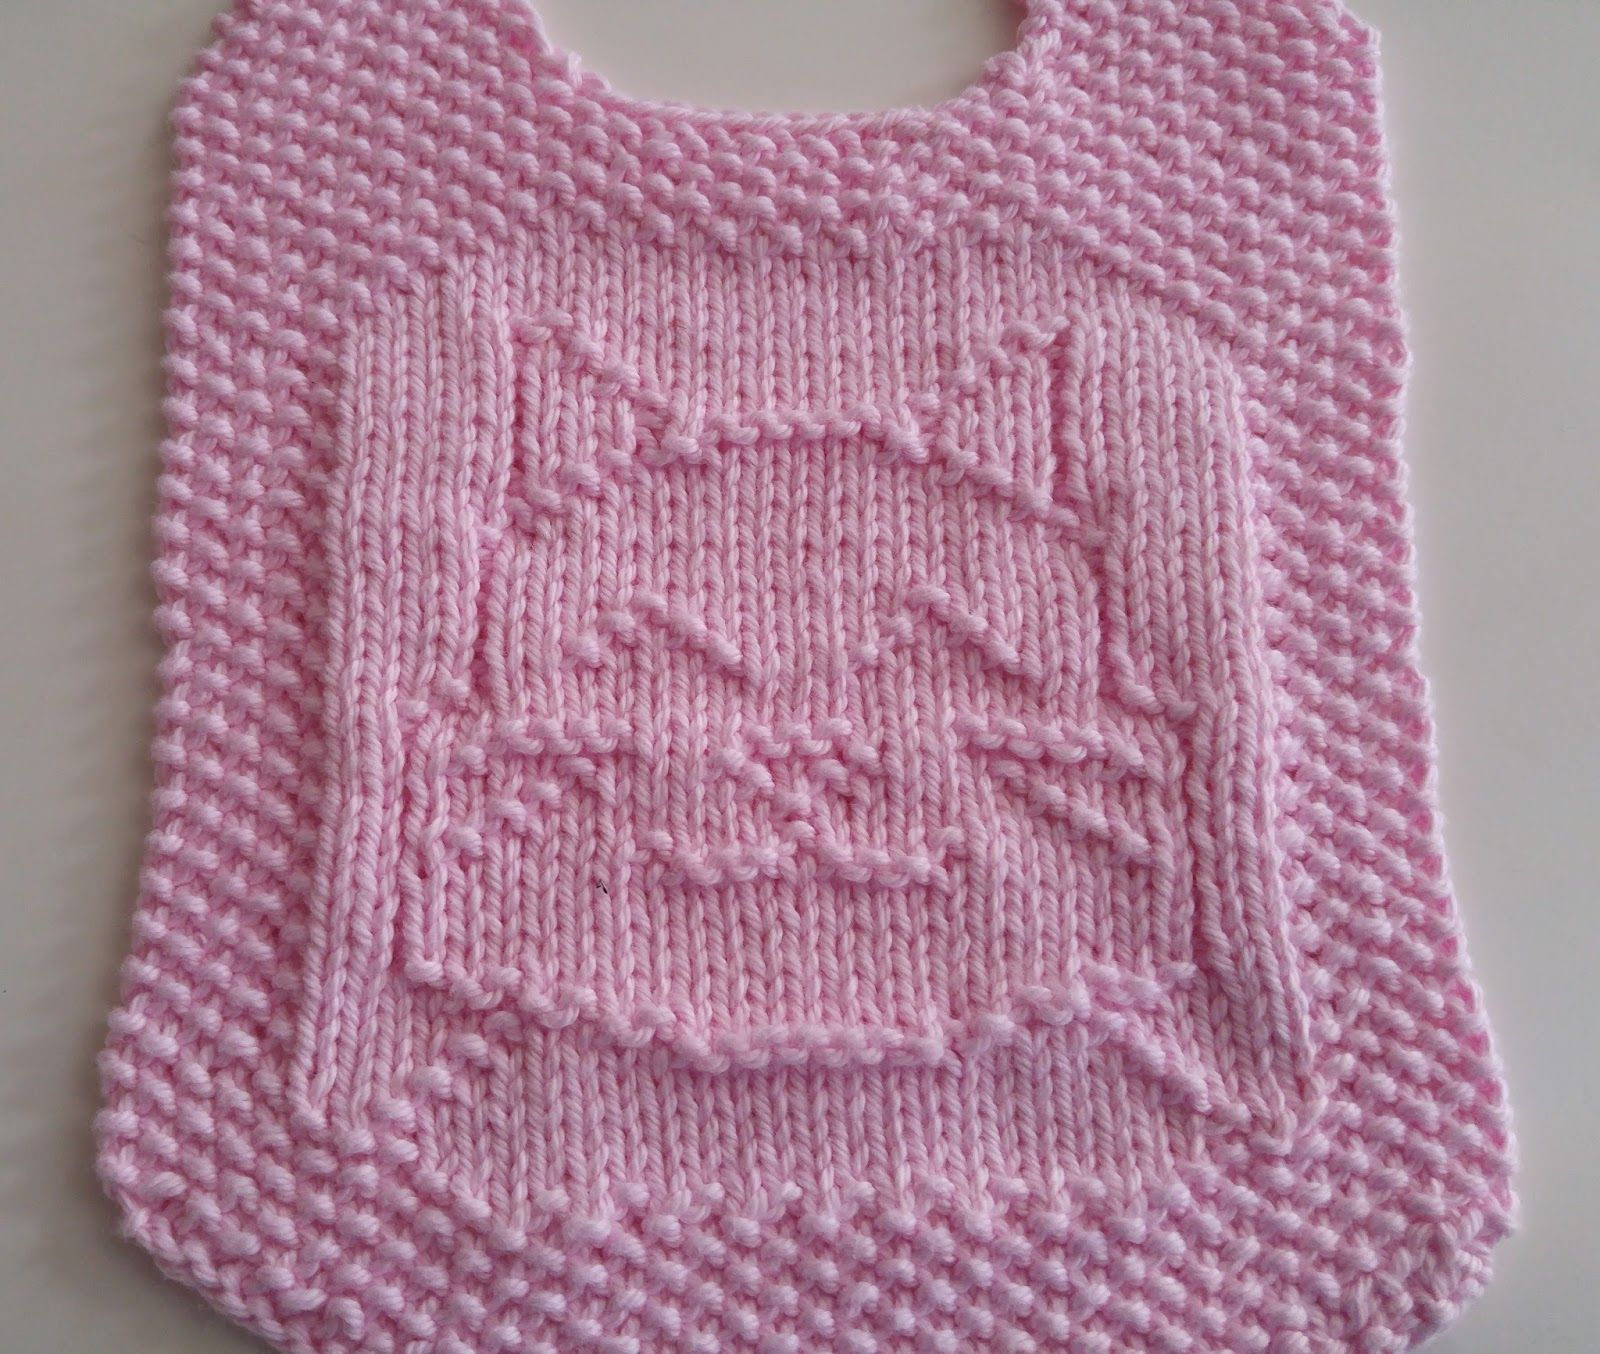 Down cloverlaine baby crochet items pinterest knitted baby one fat cat bib found on ravelry by elaine fitzpatrick she has a baby washcloth that matches this see board knit baby items free knit bankloansurffo Image collections